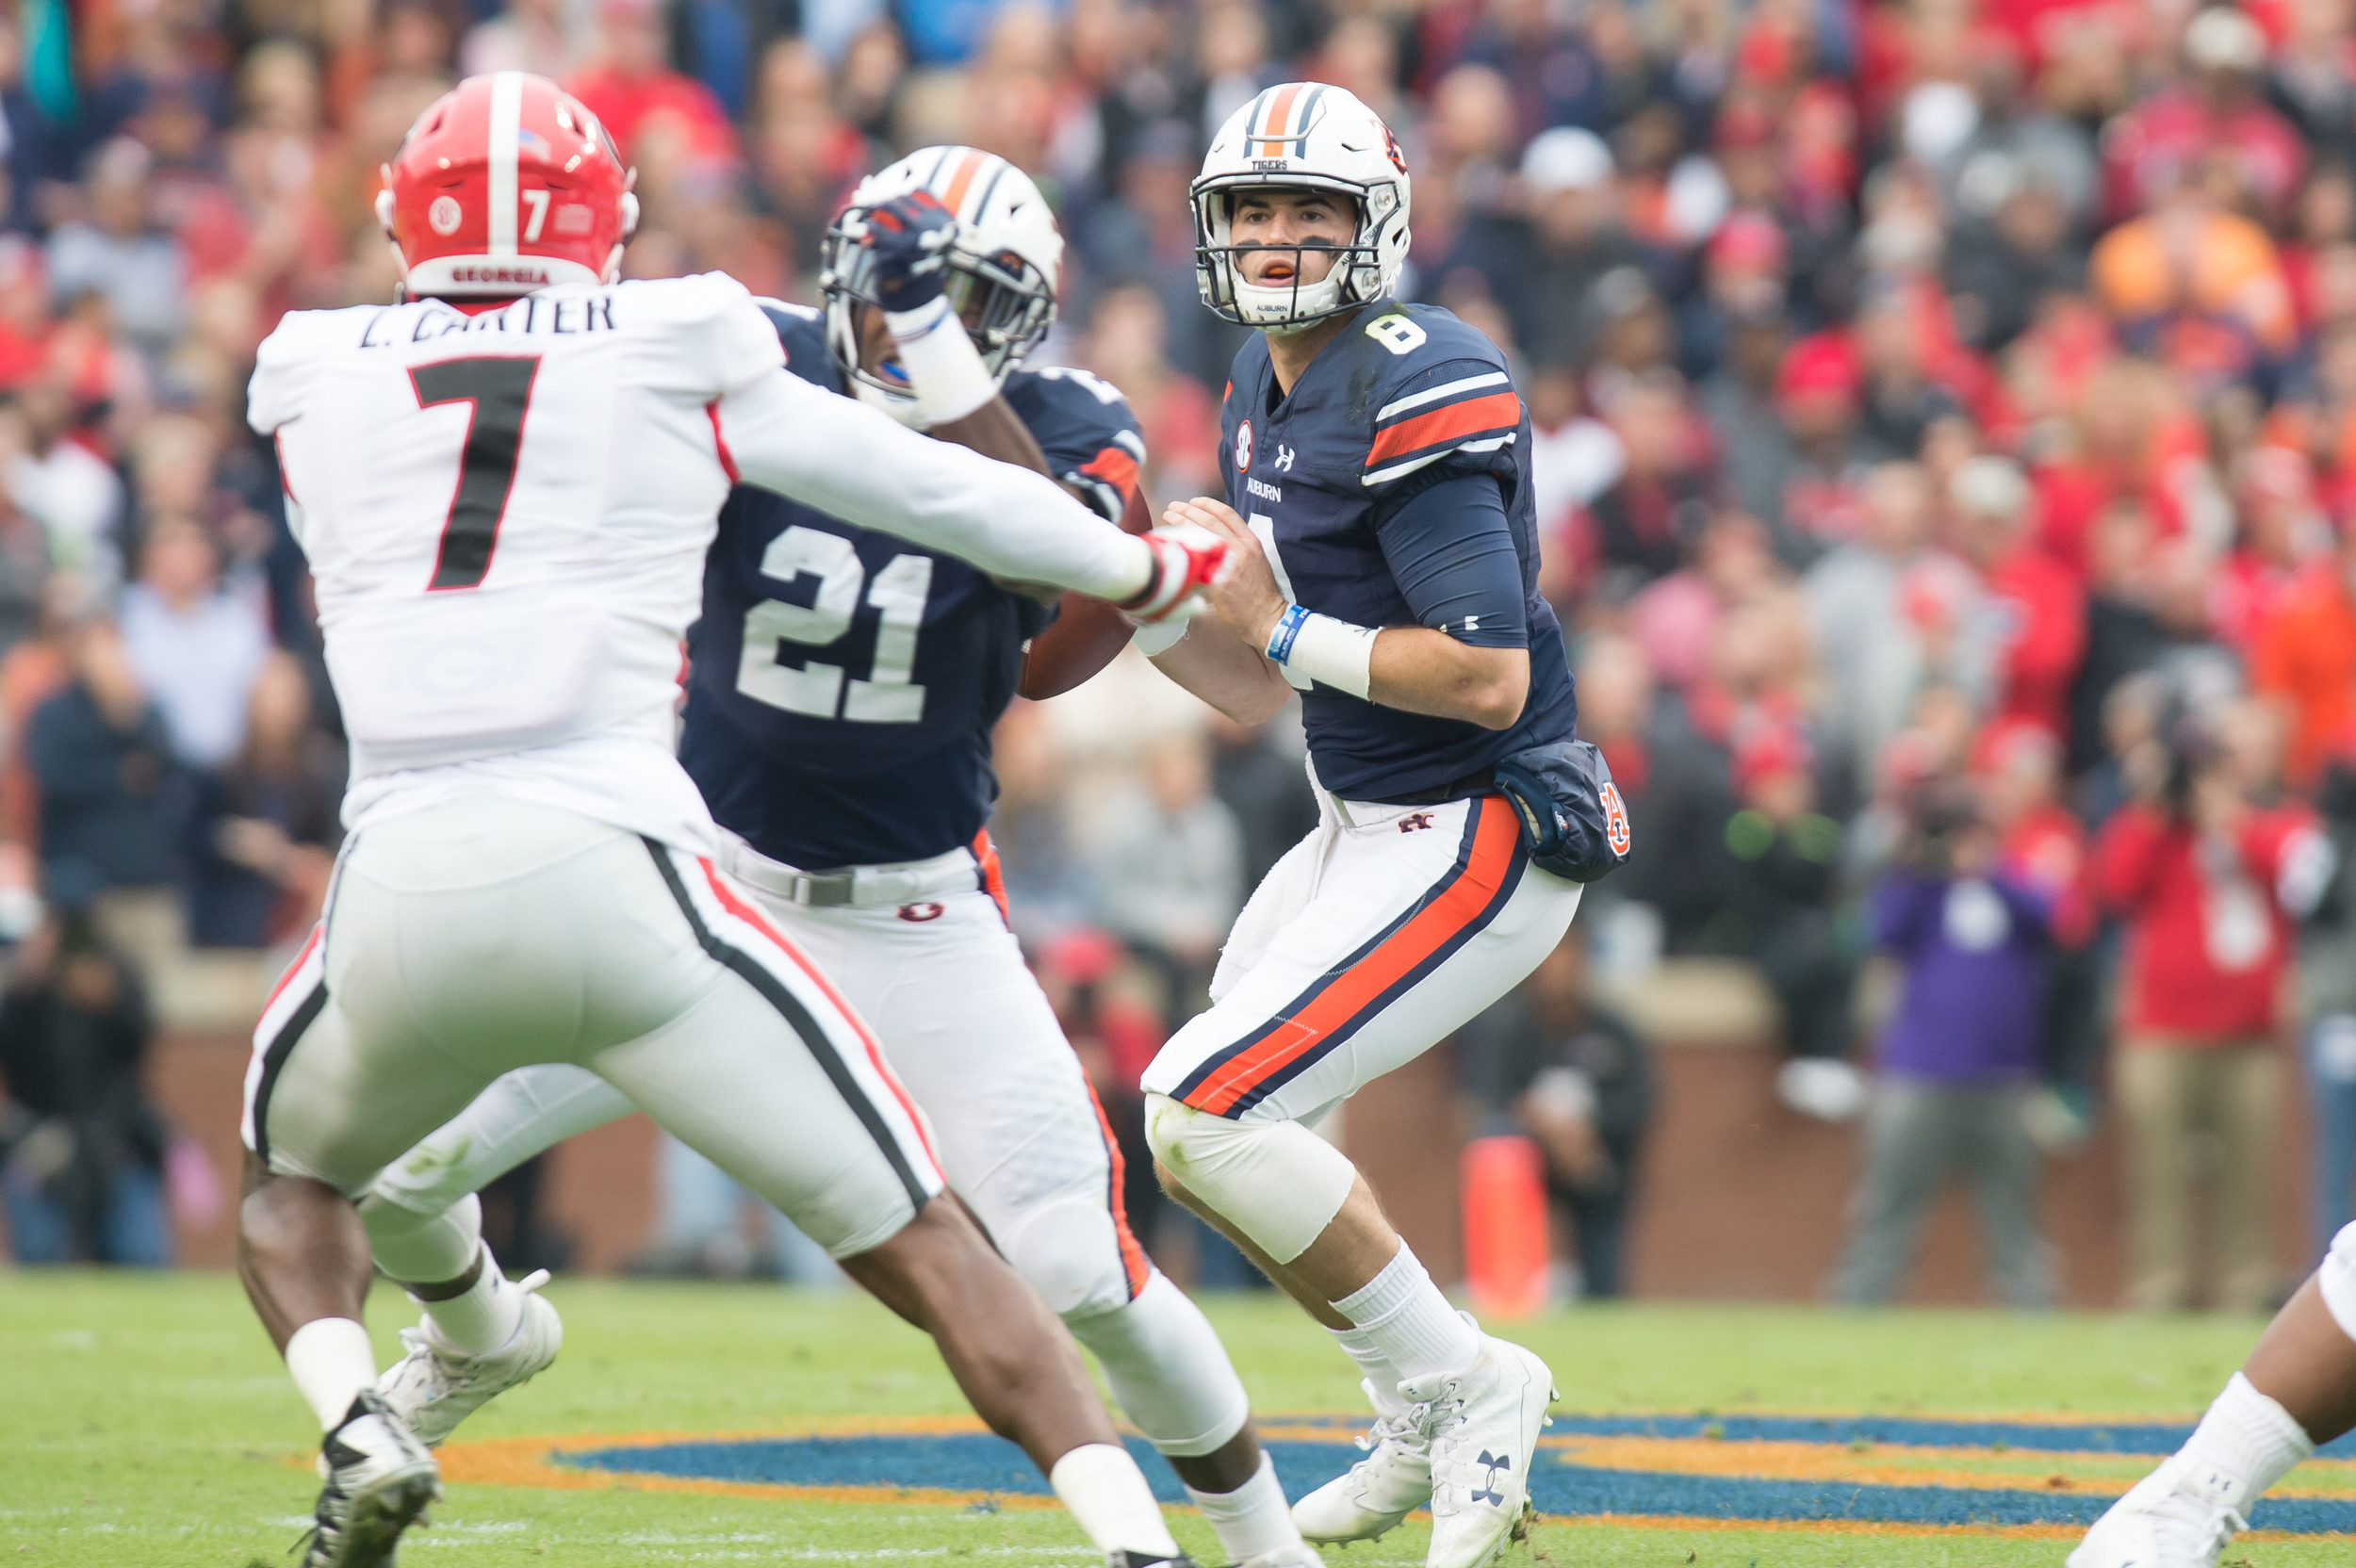 Auburn Tigers quarterback Jarrett Stidham (8) looks to throw during the first half of Saturday's game, at Jordan-Hare Stadium.